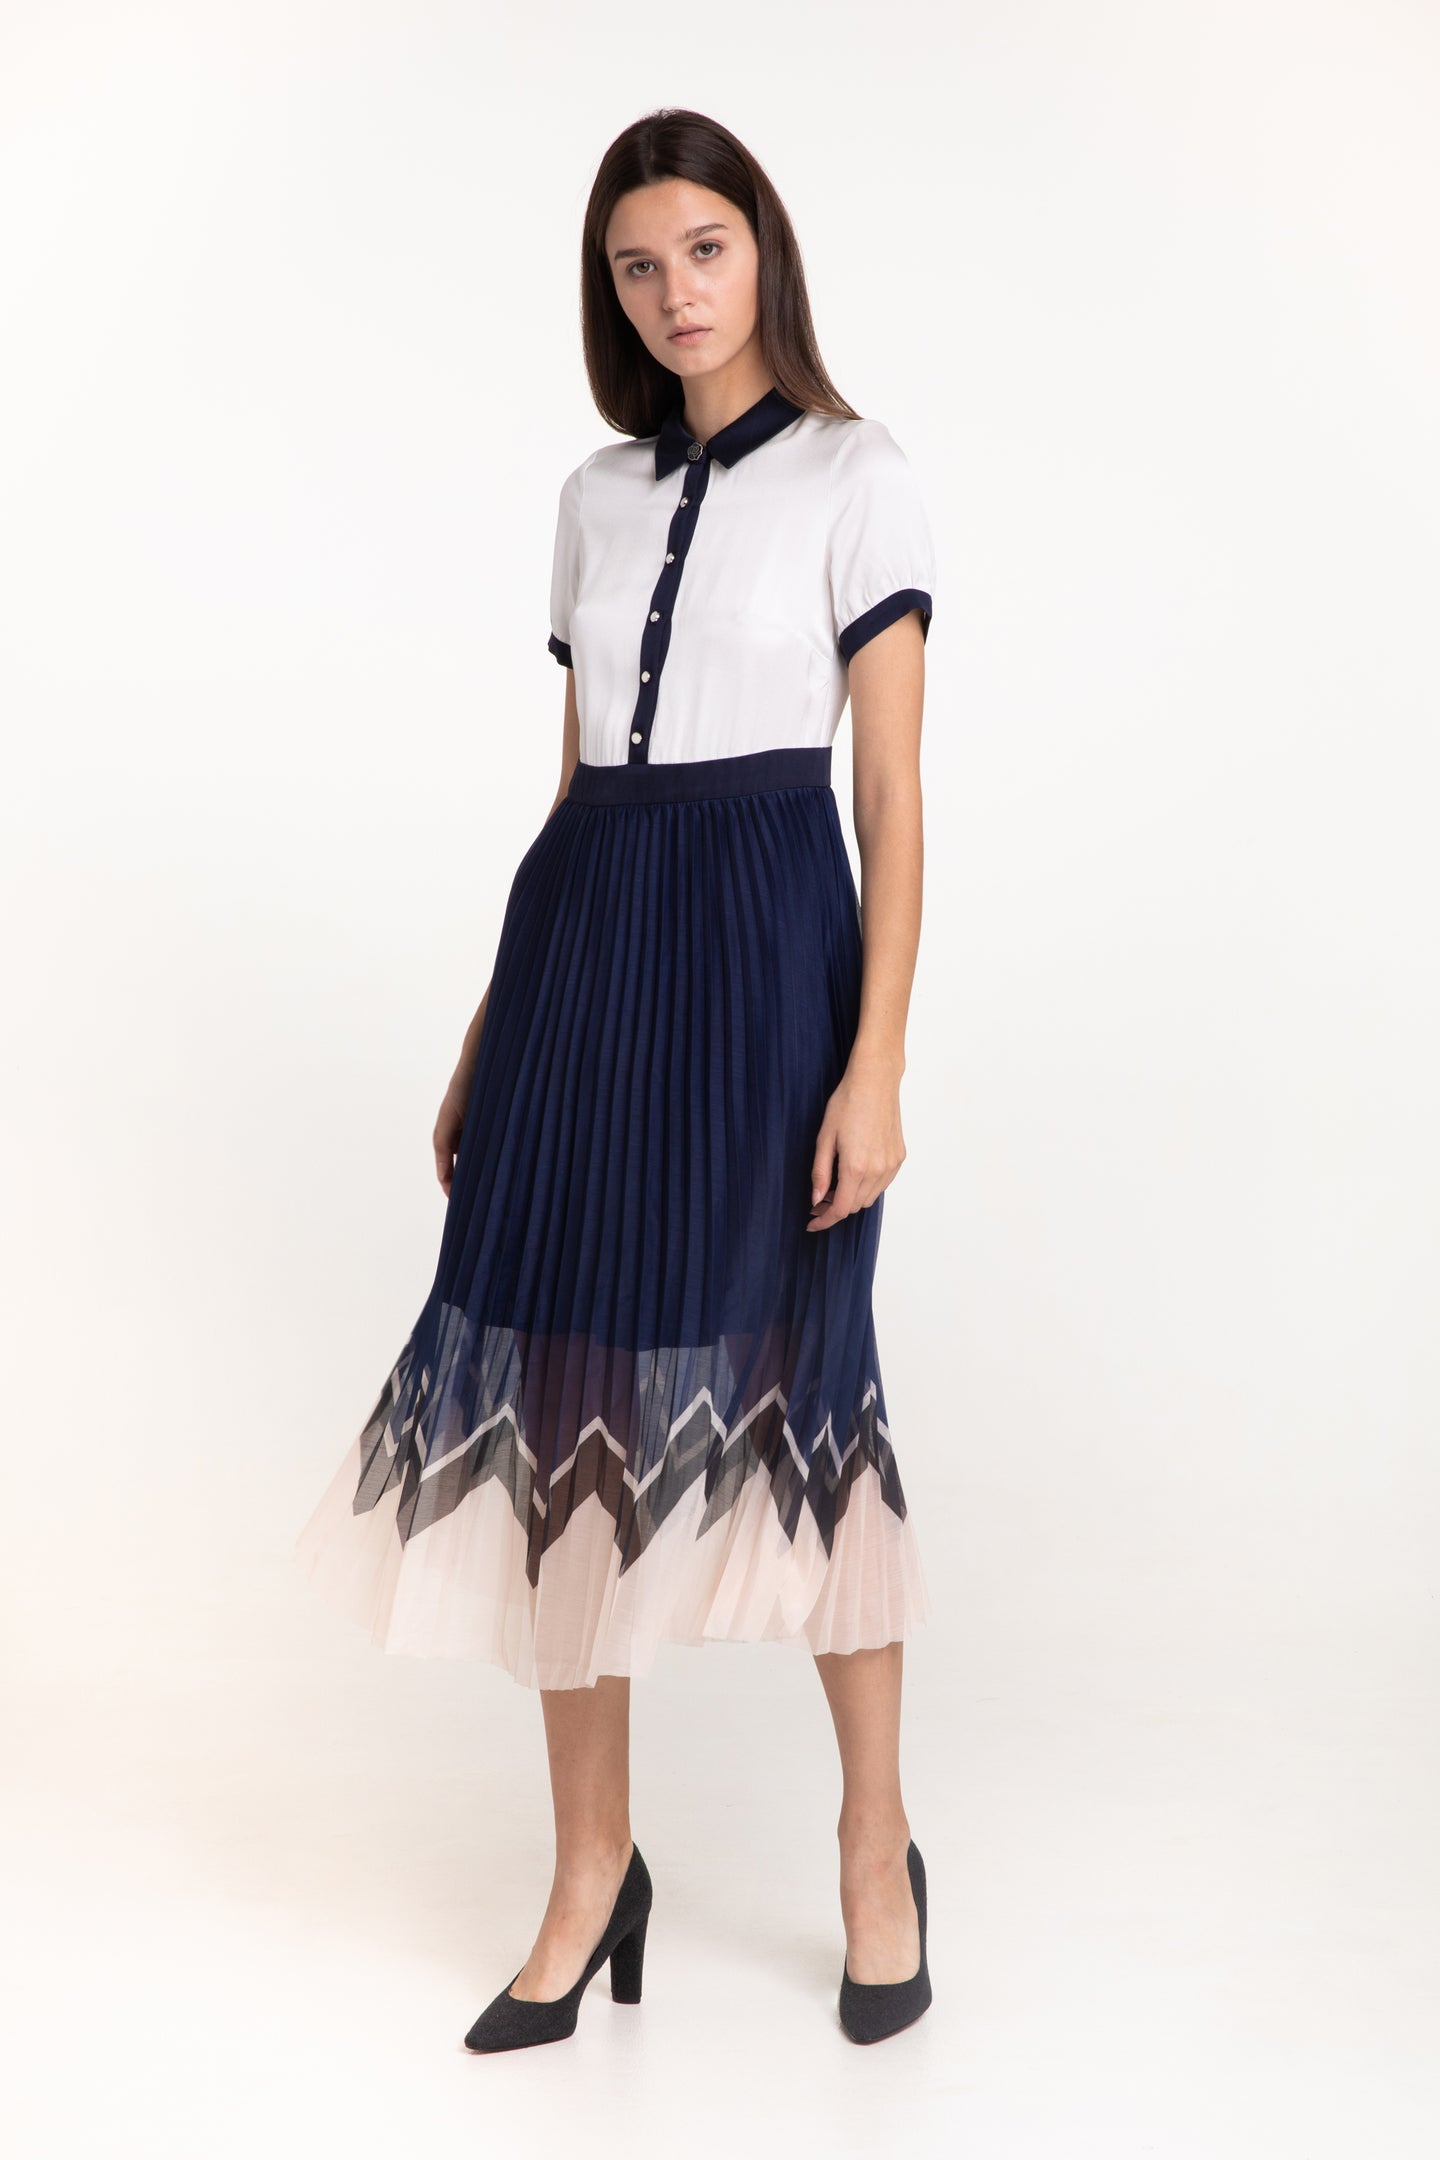 Prairie Accordion dress